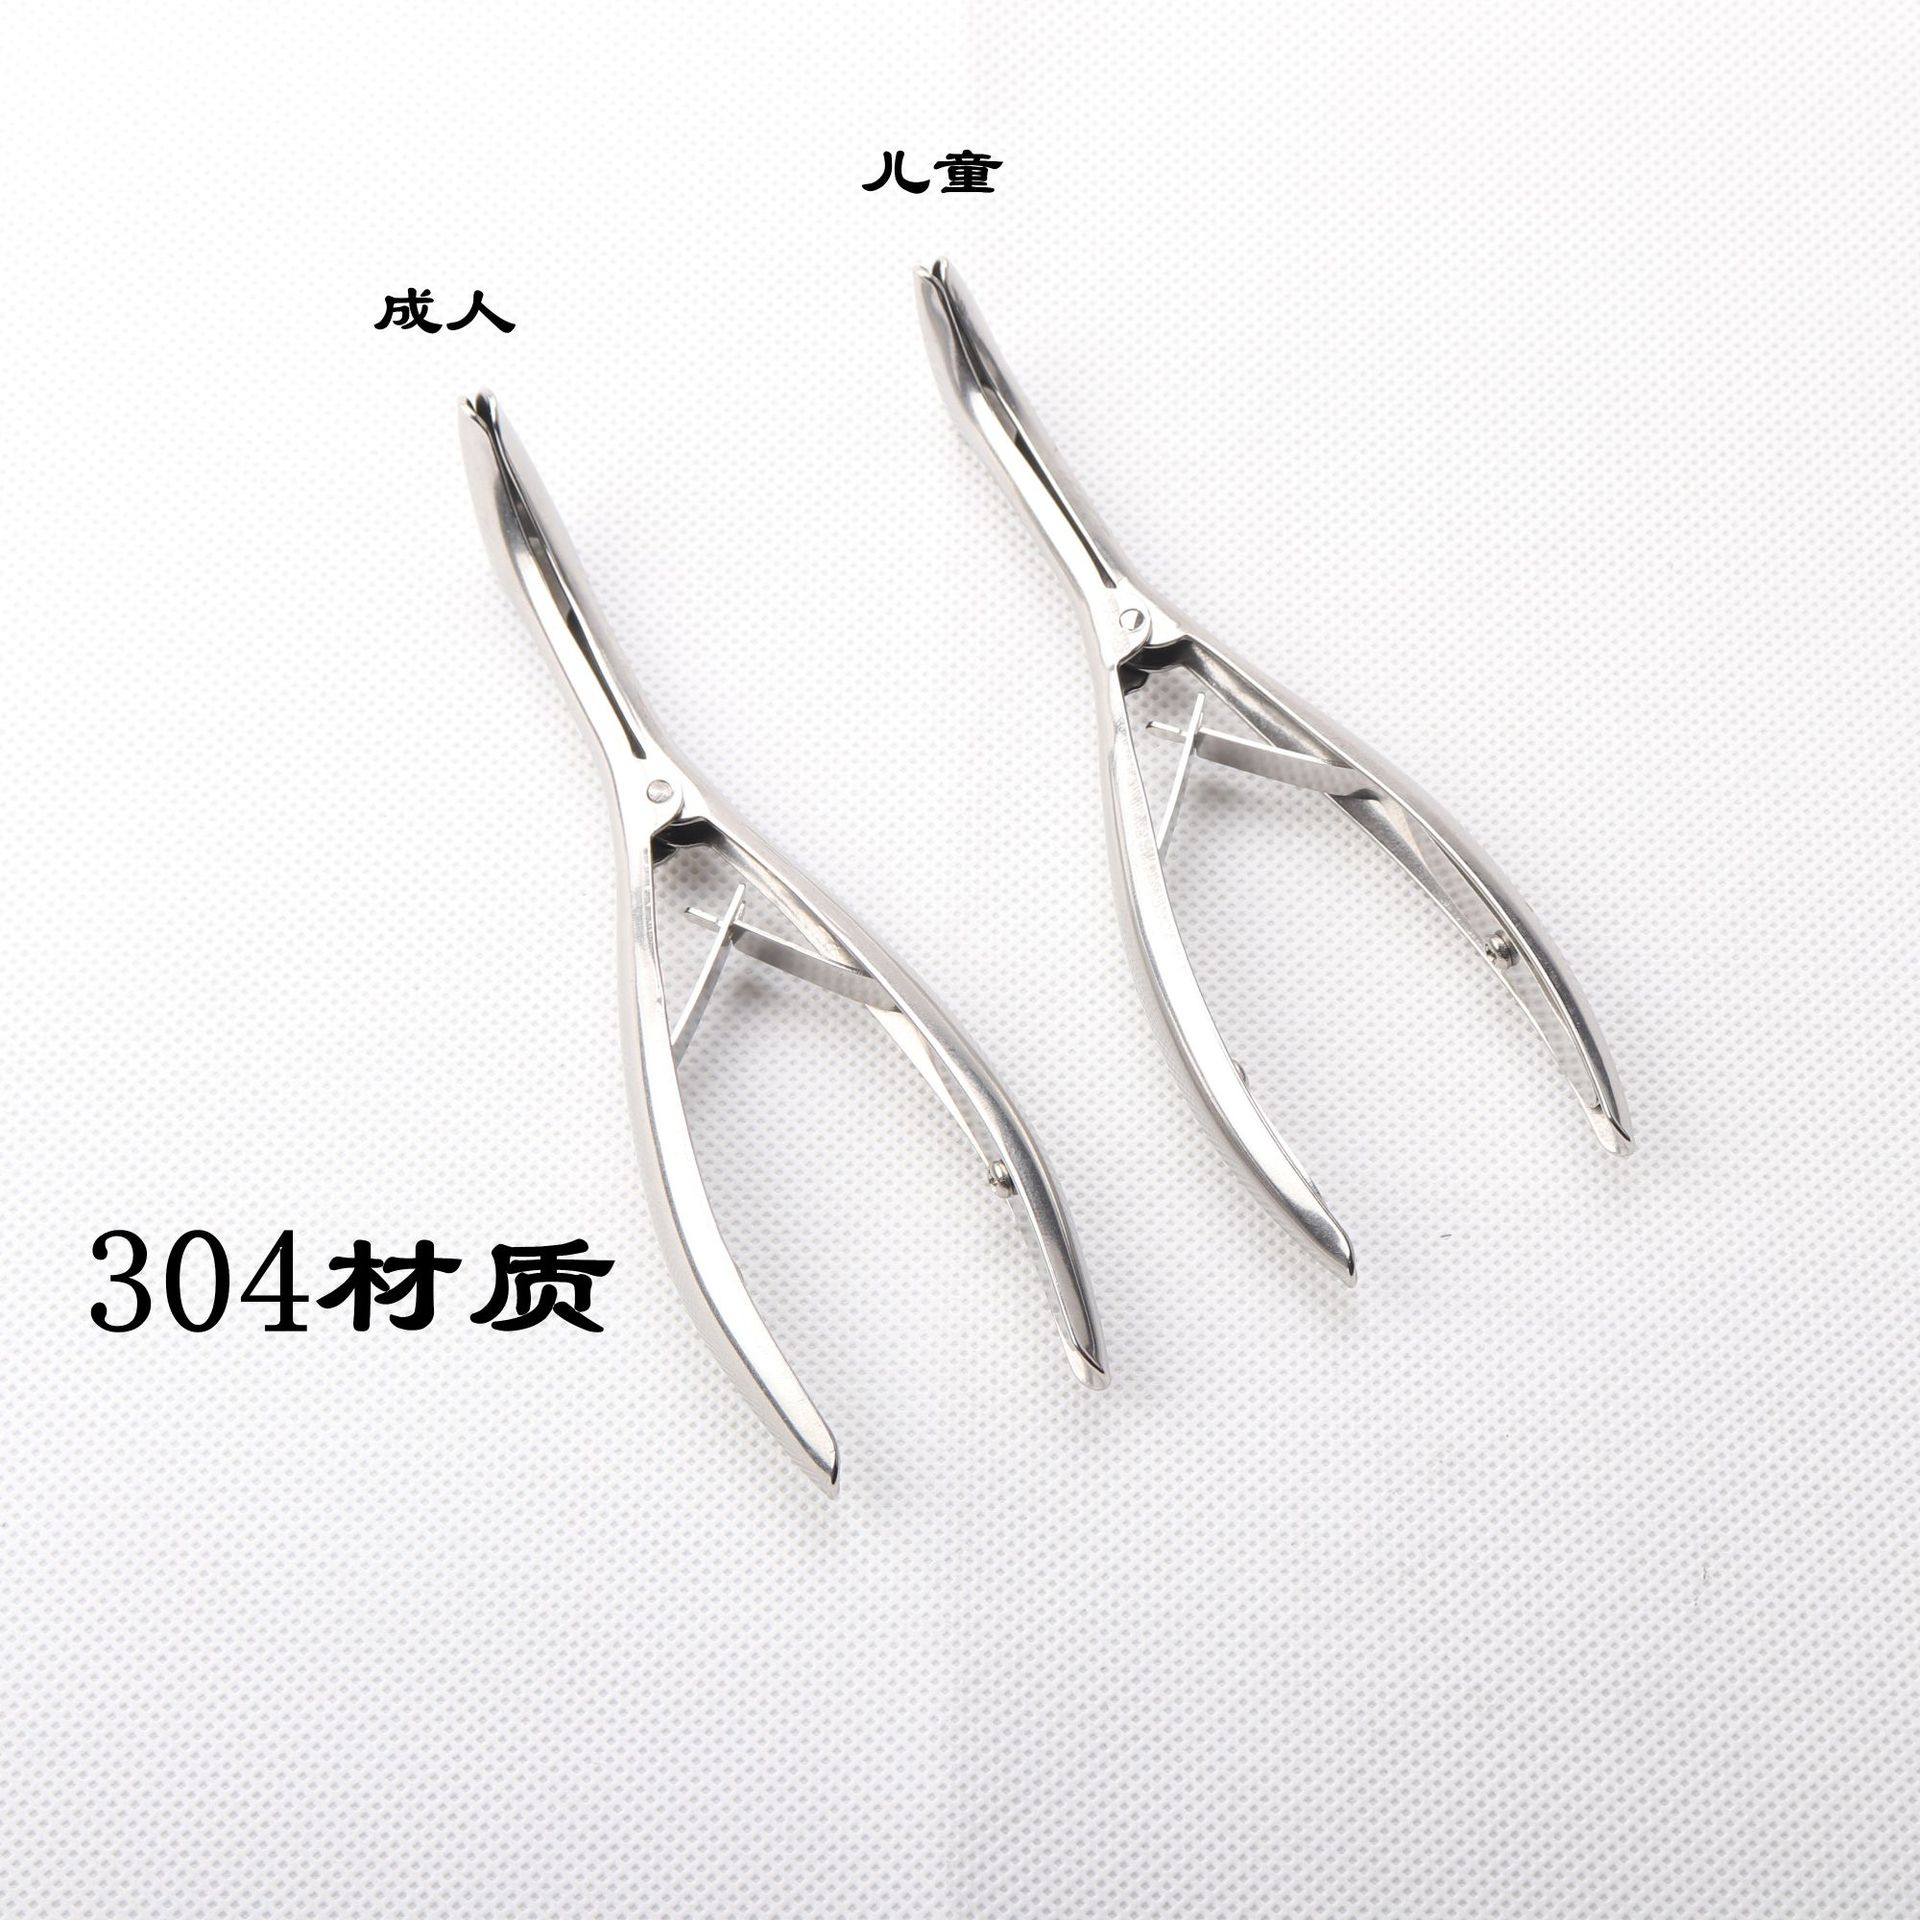 304 Stainless Steel Rhinoscope Adult Children Sinus Mirror Nasal Cavity Check Mirror Nasal Dilator Ear And Nose Check Zhang Clam